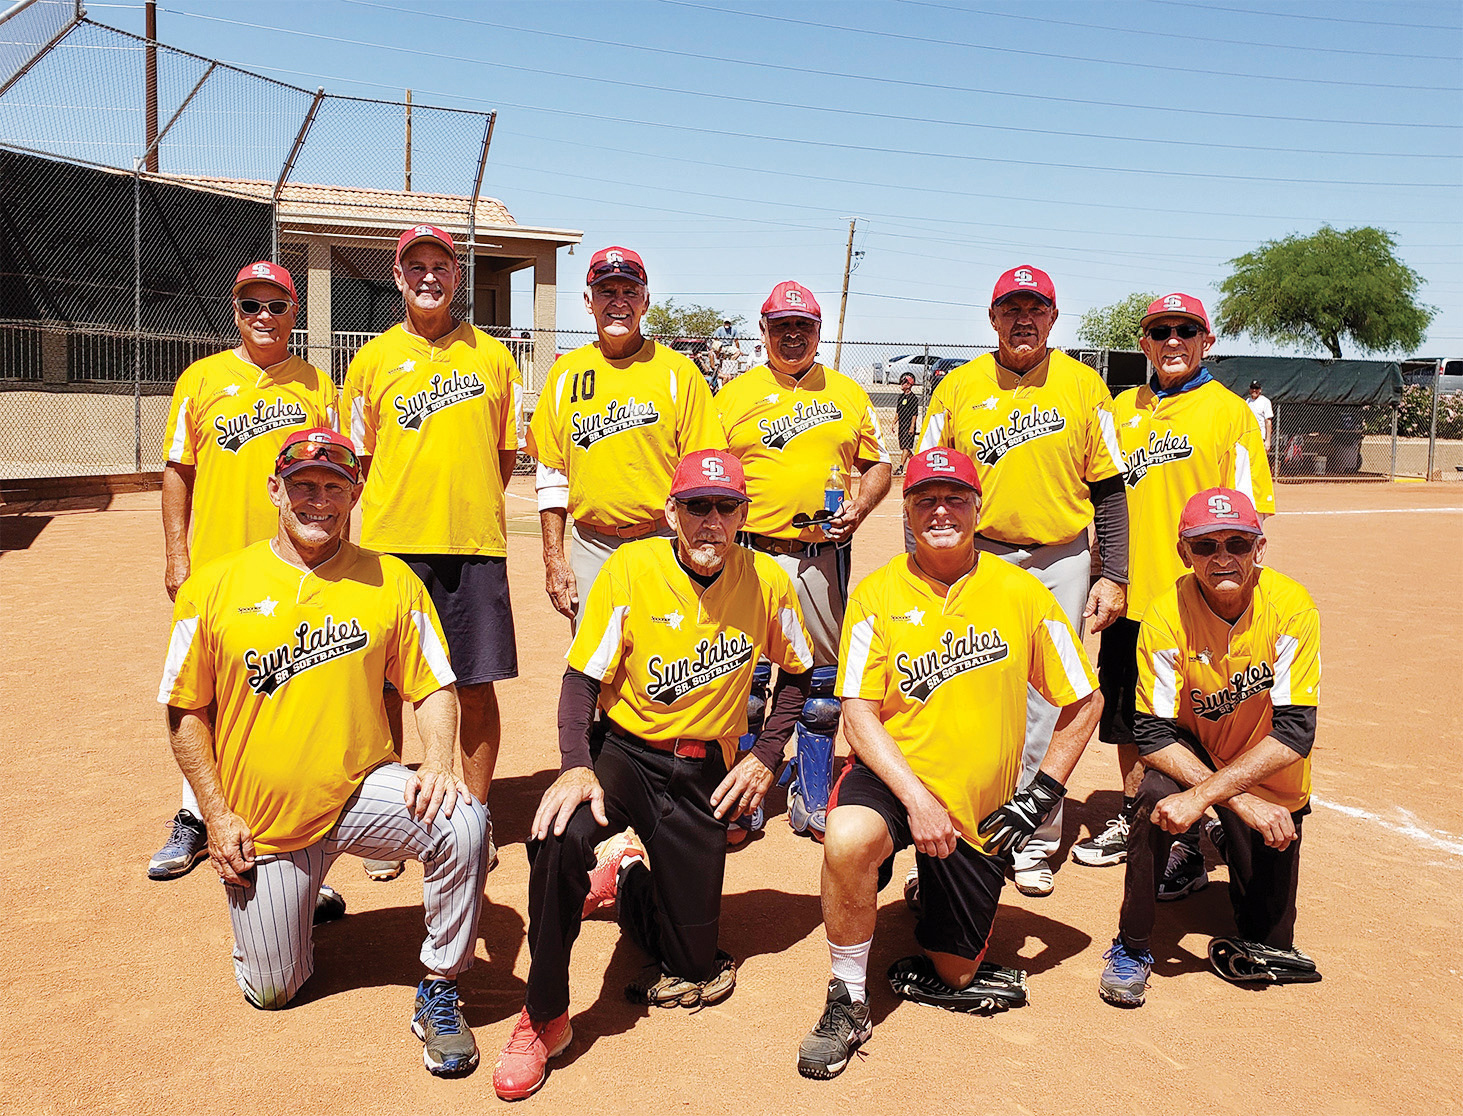 The Champs: Front (kneeling, left to right): Jon Hendrikse, Paul Gayer, Bob Reed, and Rick Oien. Back (left to right): Sam Giordano, Tom Schneider, Dave Waibel, Randy Neumann, Marty Hobby, and Kelly Anderson